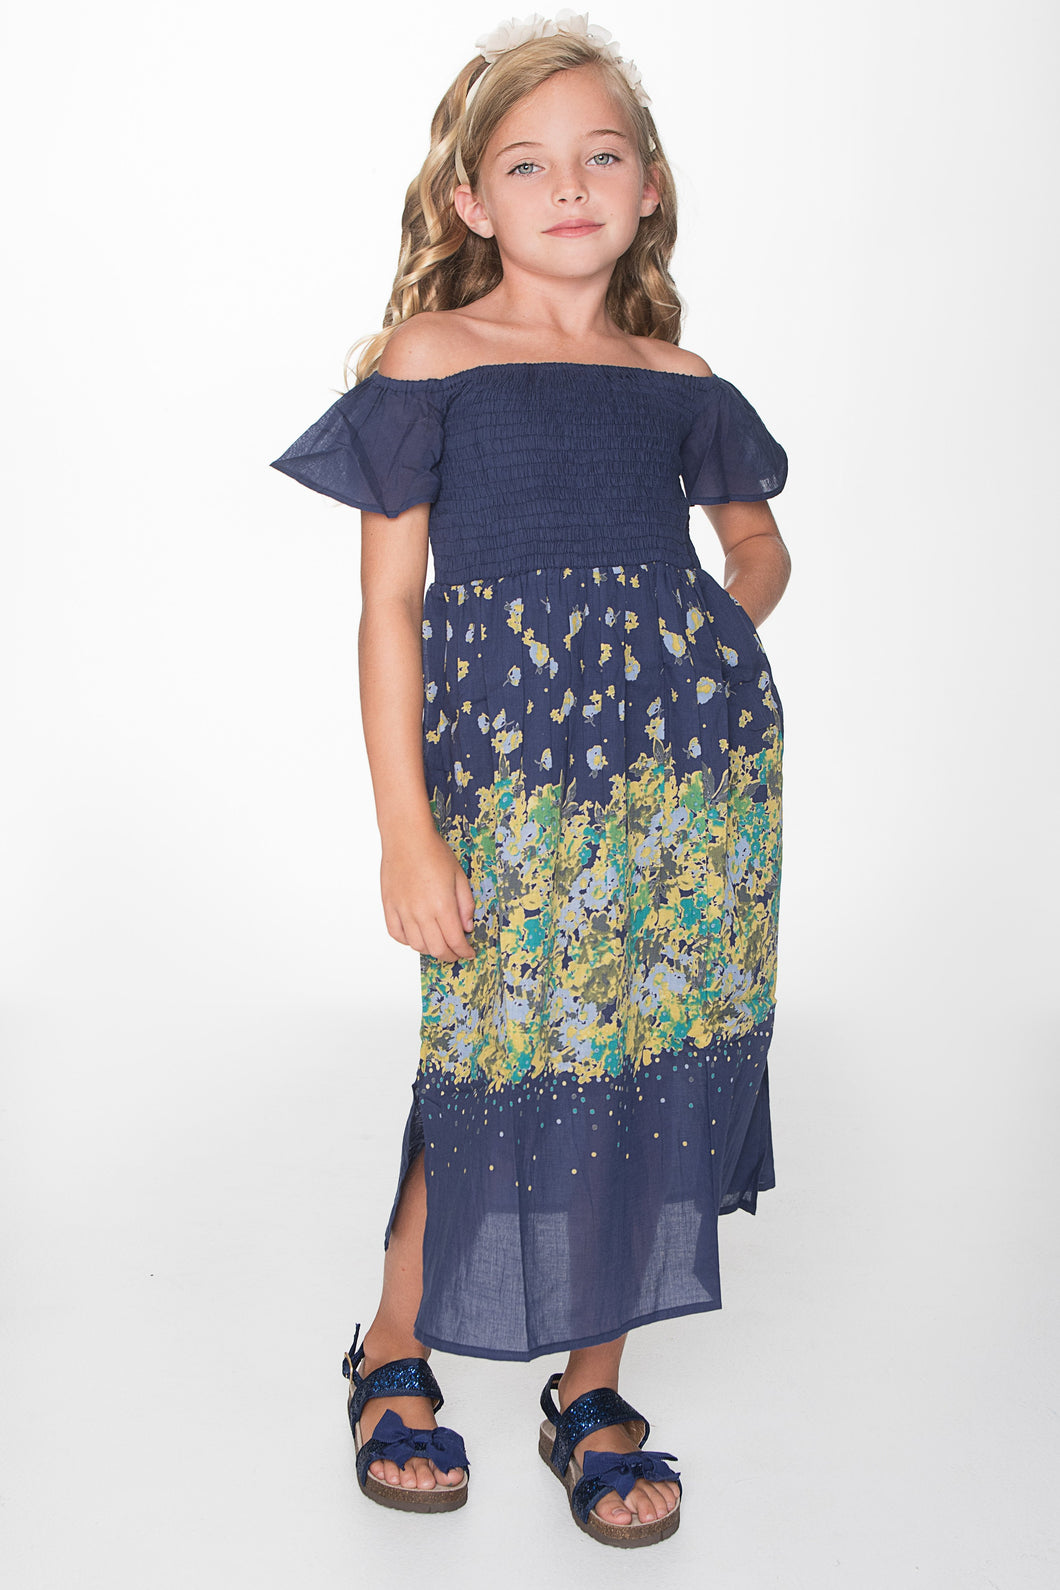 Navy Blue Floral Maxi Dress - Kids Clothing, Dress - Girls Dress, Yo Baby Online - Yo Baby